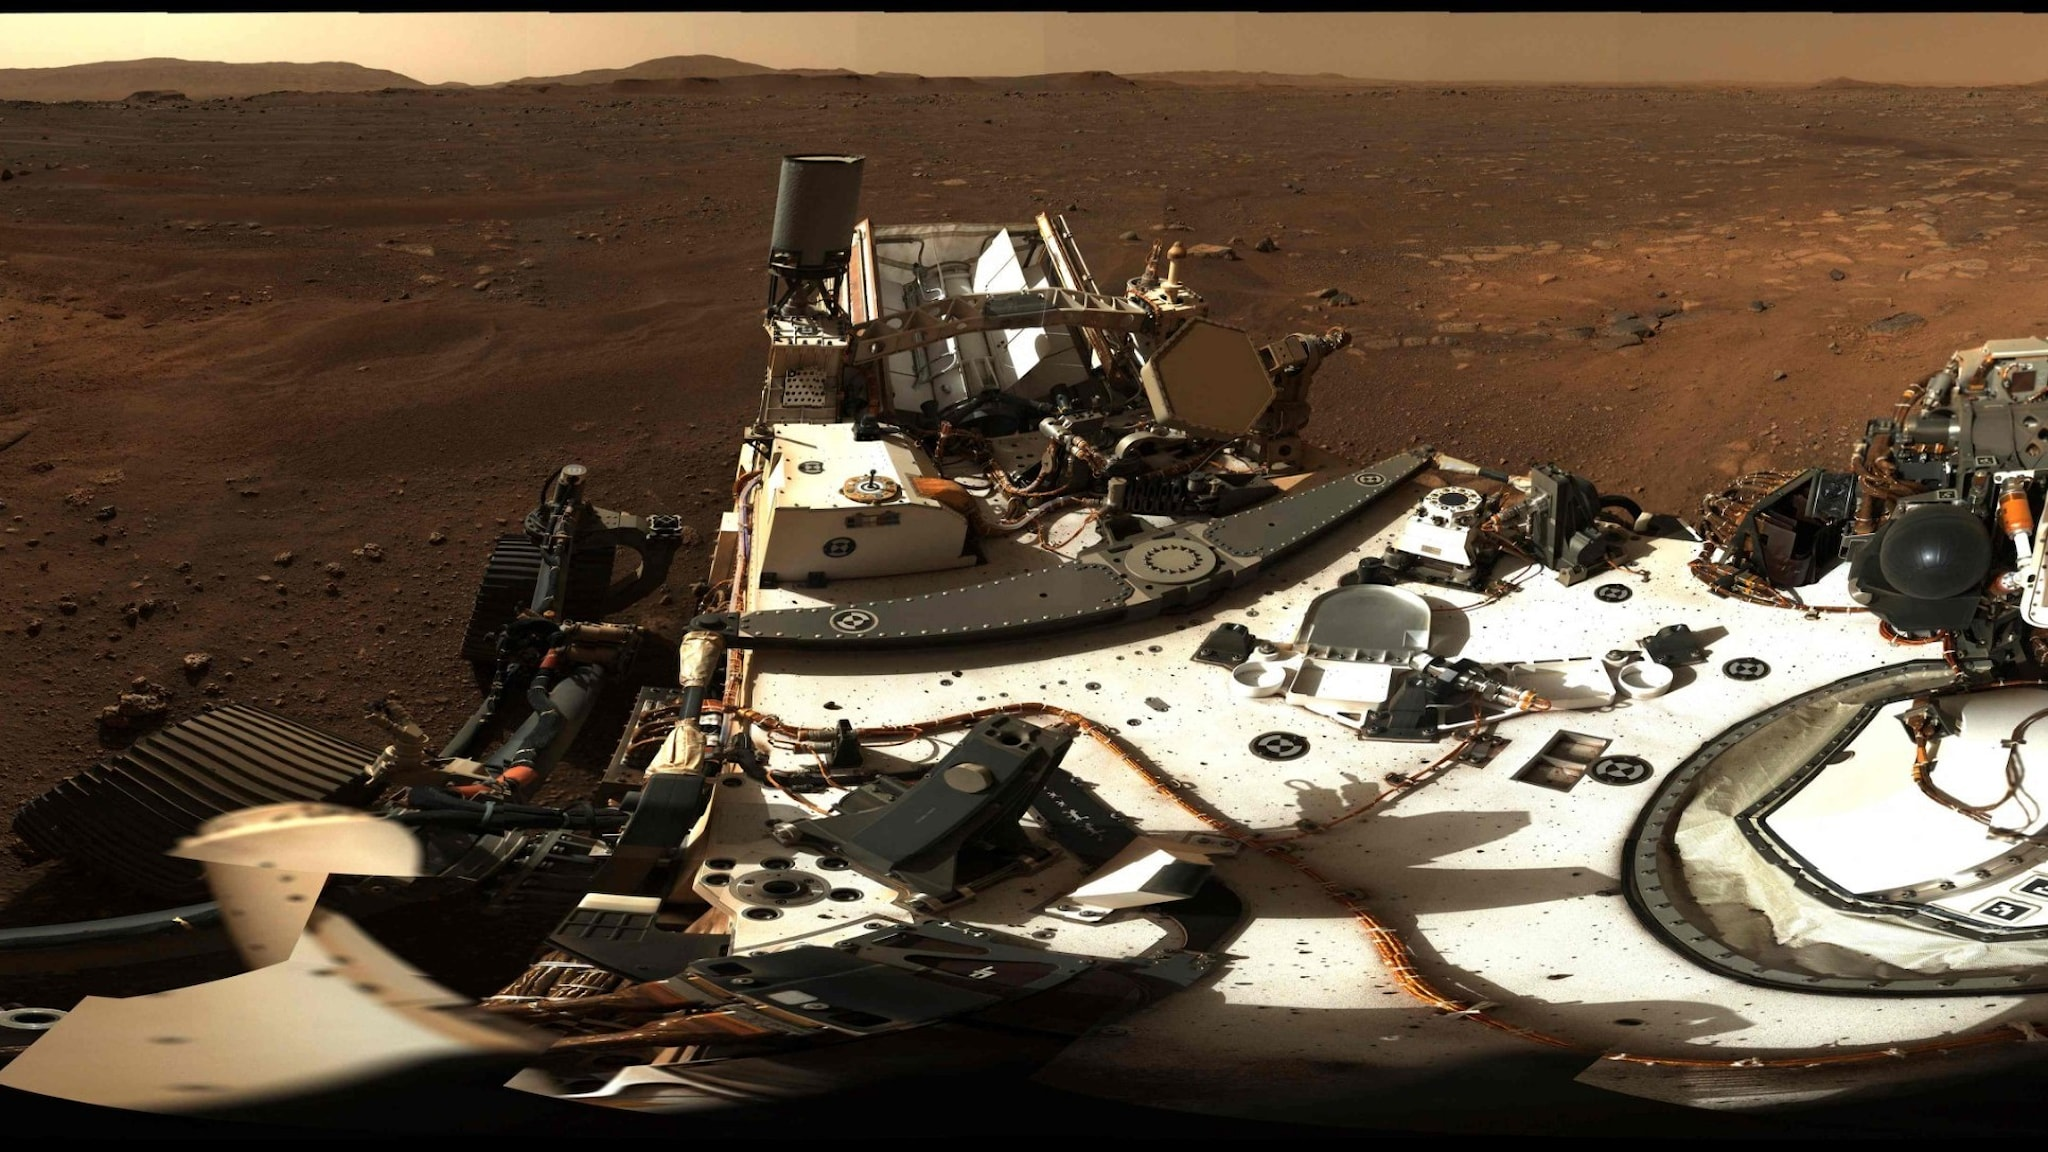 The shiny surface of a rover on a rust-colored ground with light on the horizon.